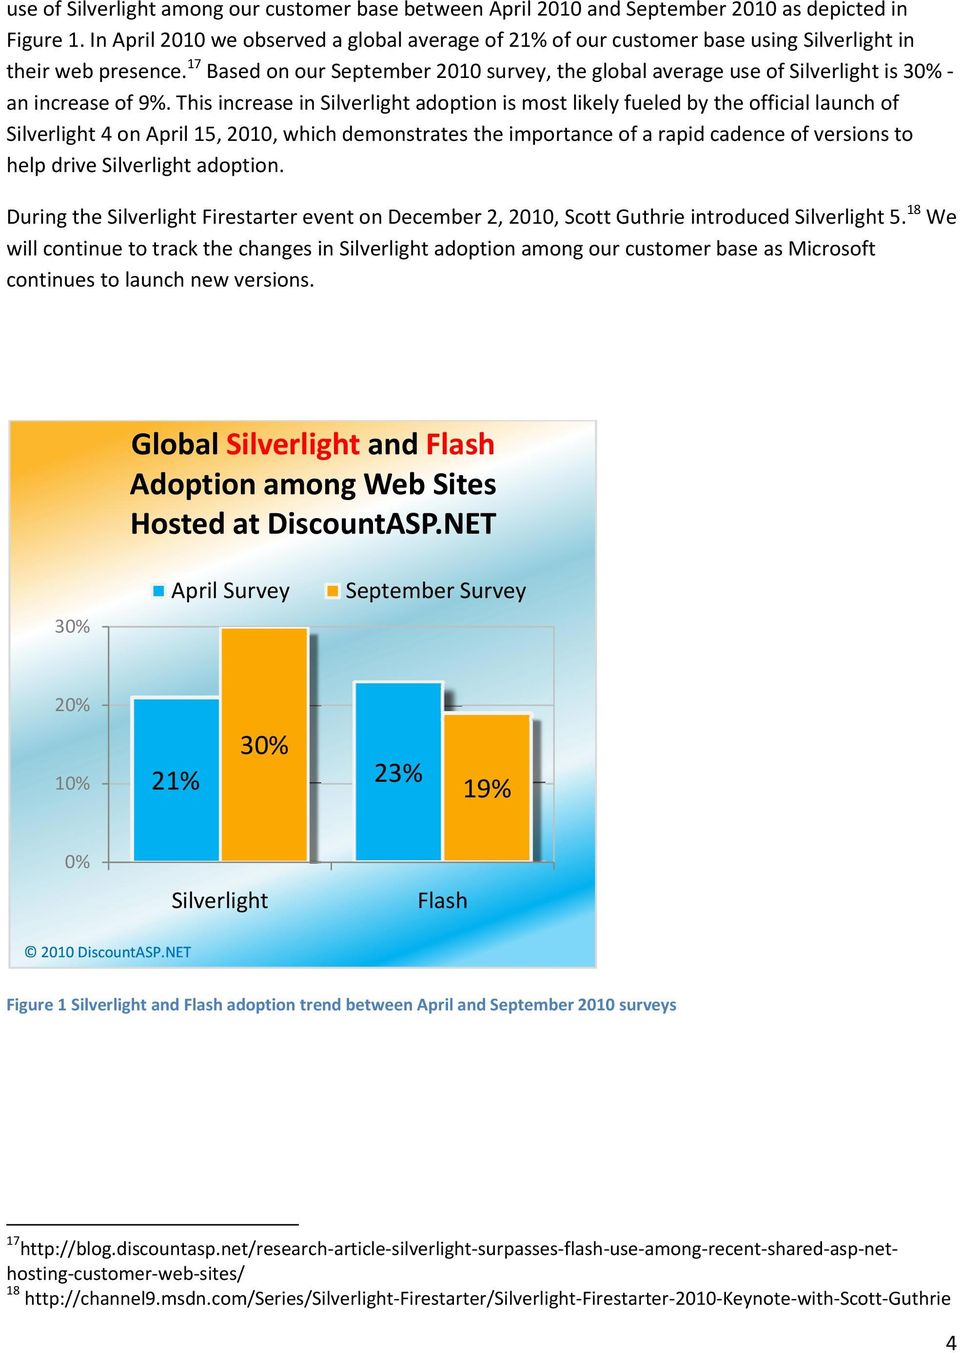 17 Based on our September 2010 survey, the global average use of Silverlight is 30% an increase of 9%.